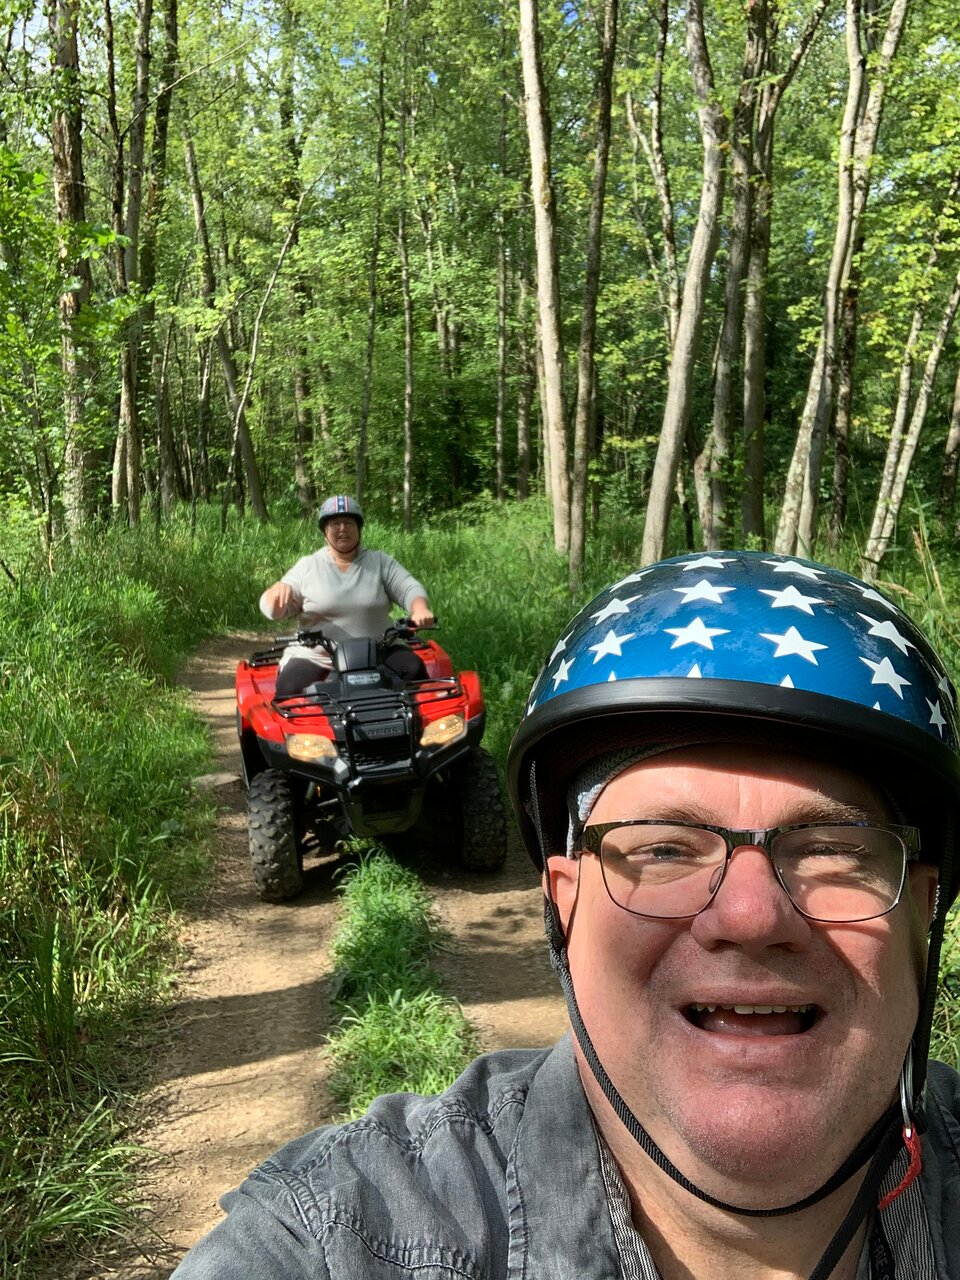 Kjc Atv Rentals And Trails Of South Haven 2020 All You Need To Know Before You Go With Photos Tripadvisor